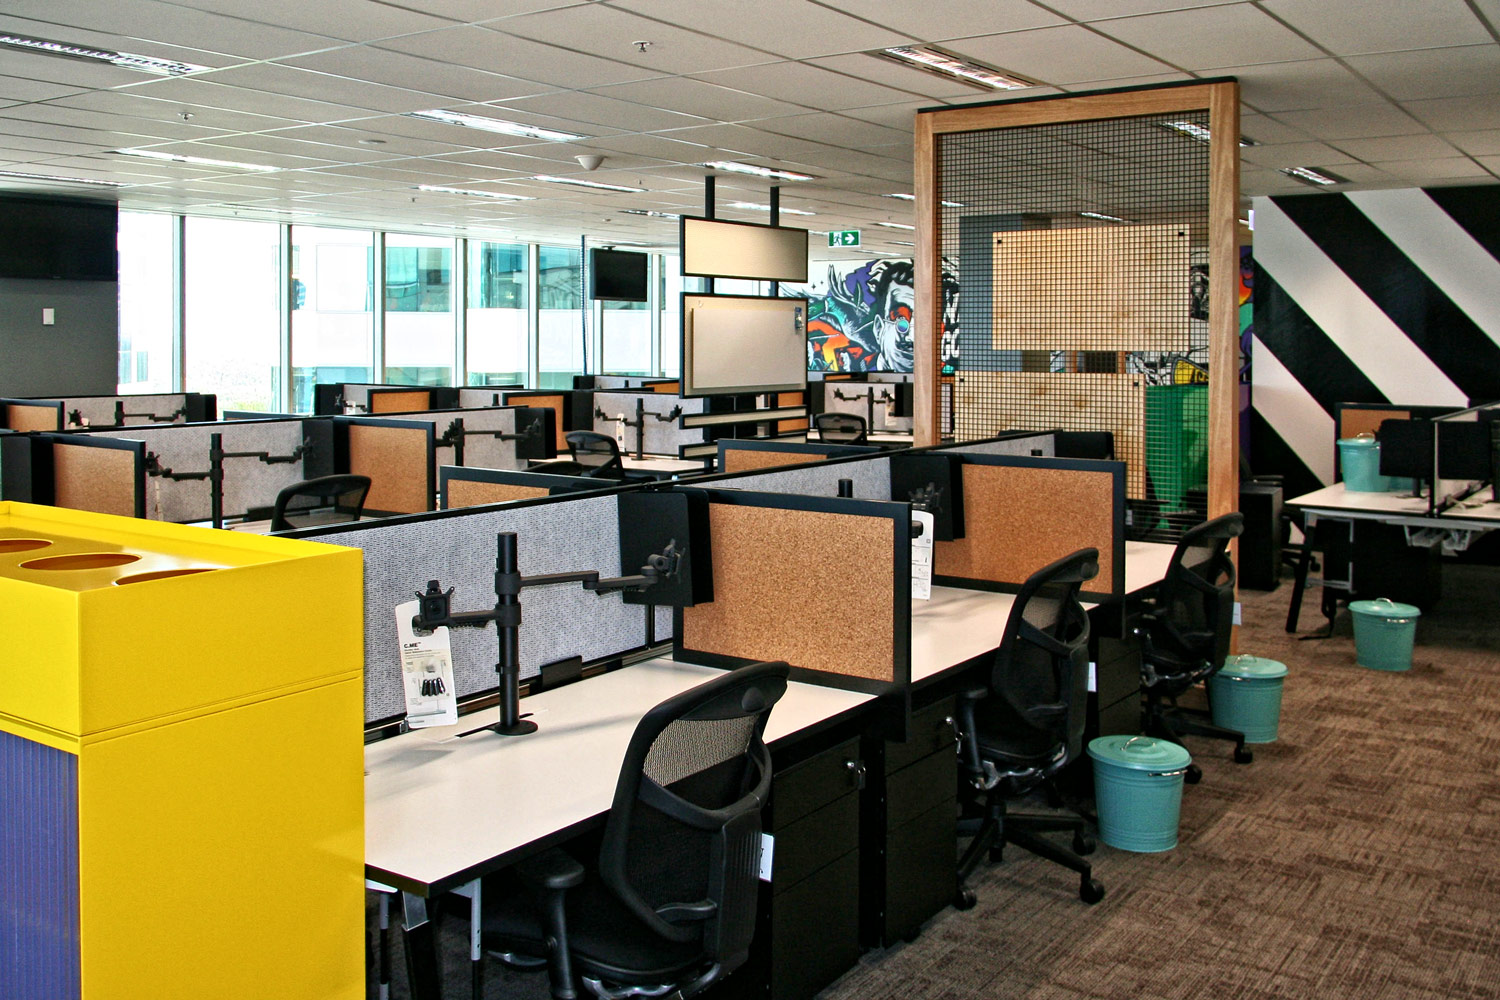 Tranzyt workstations with dividing screens and KI monitor arms